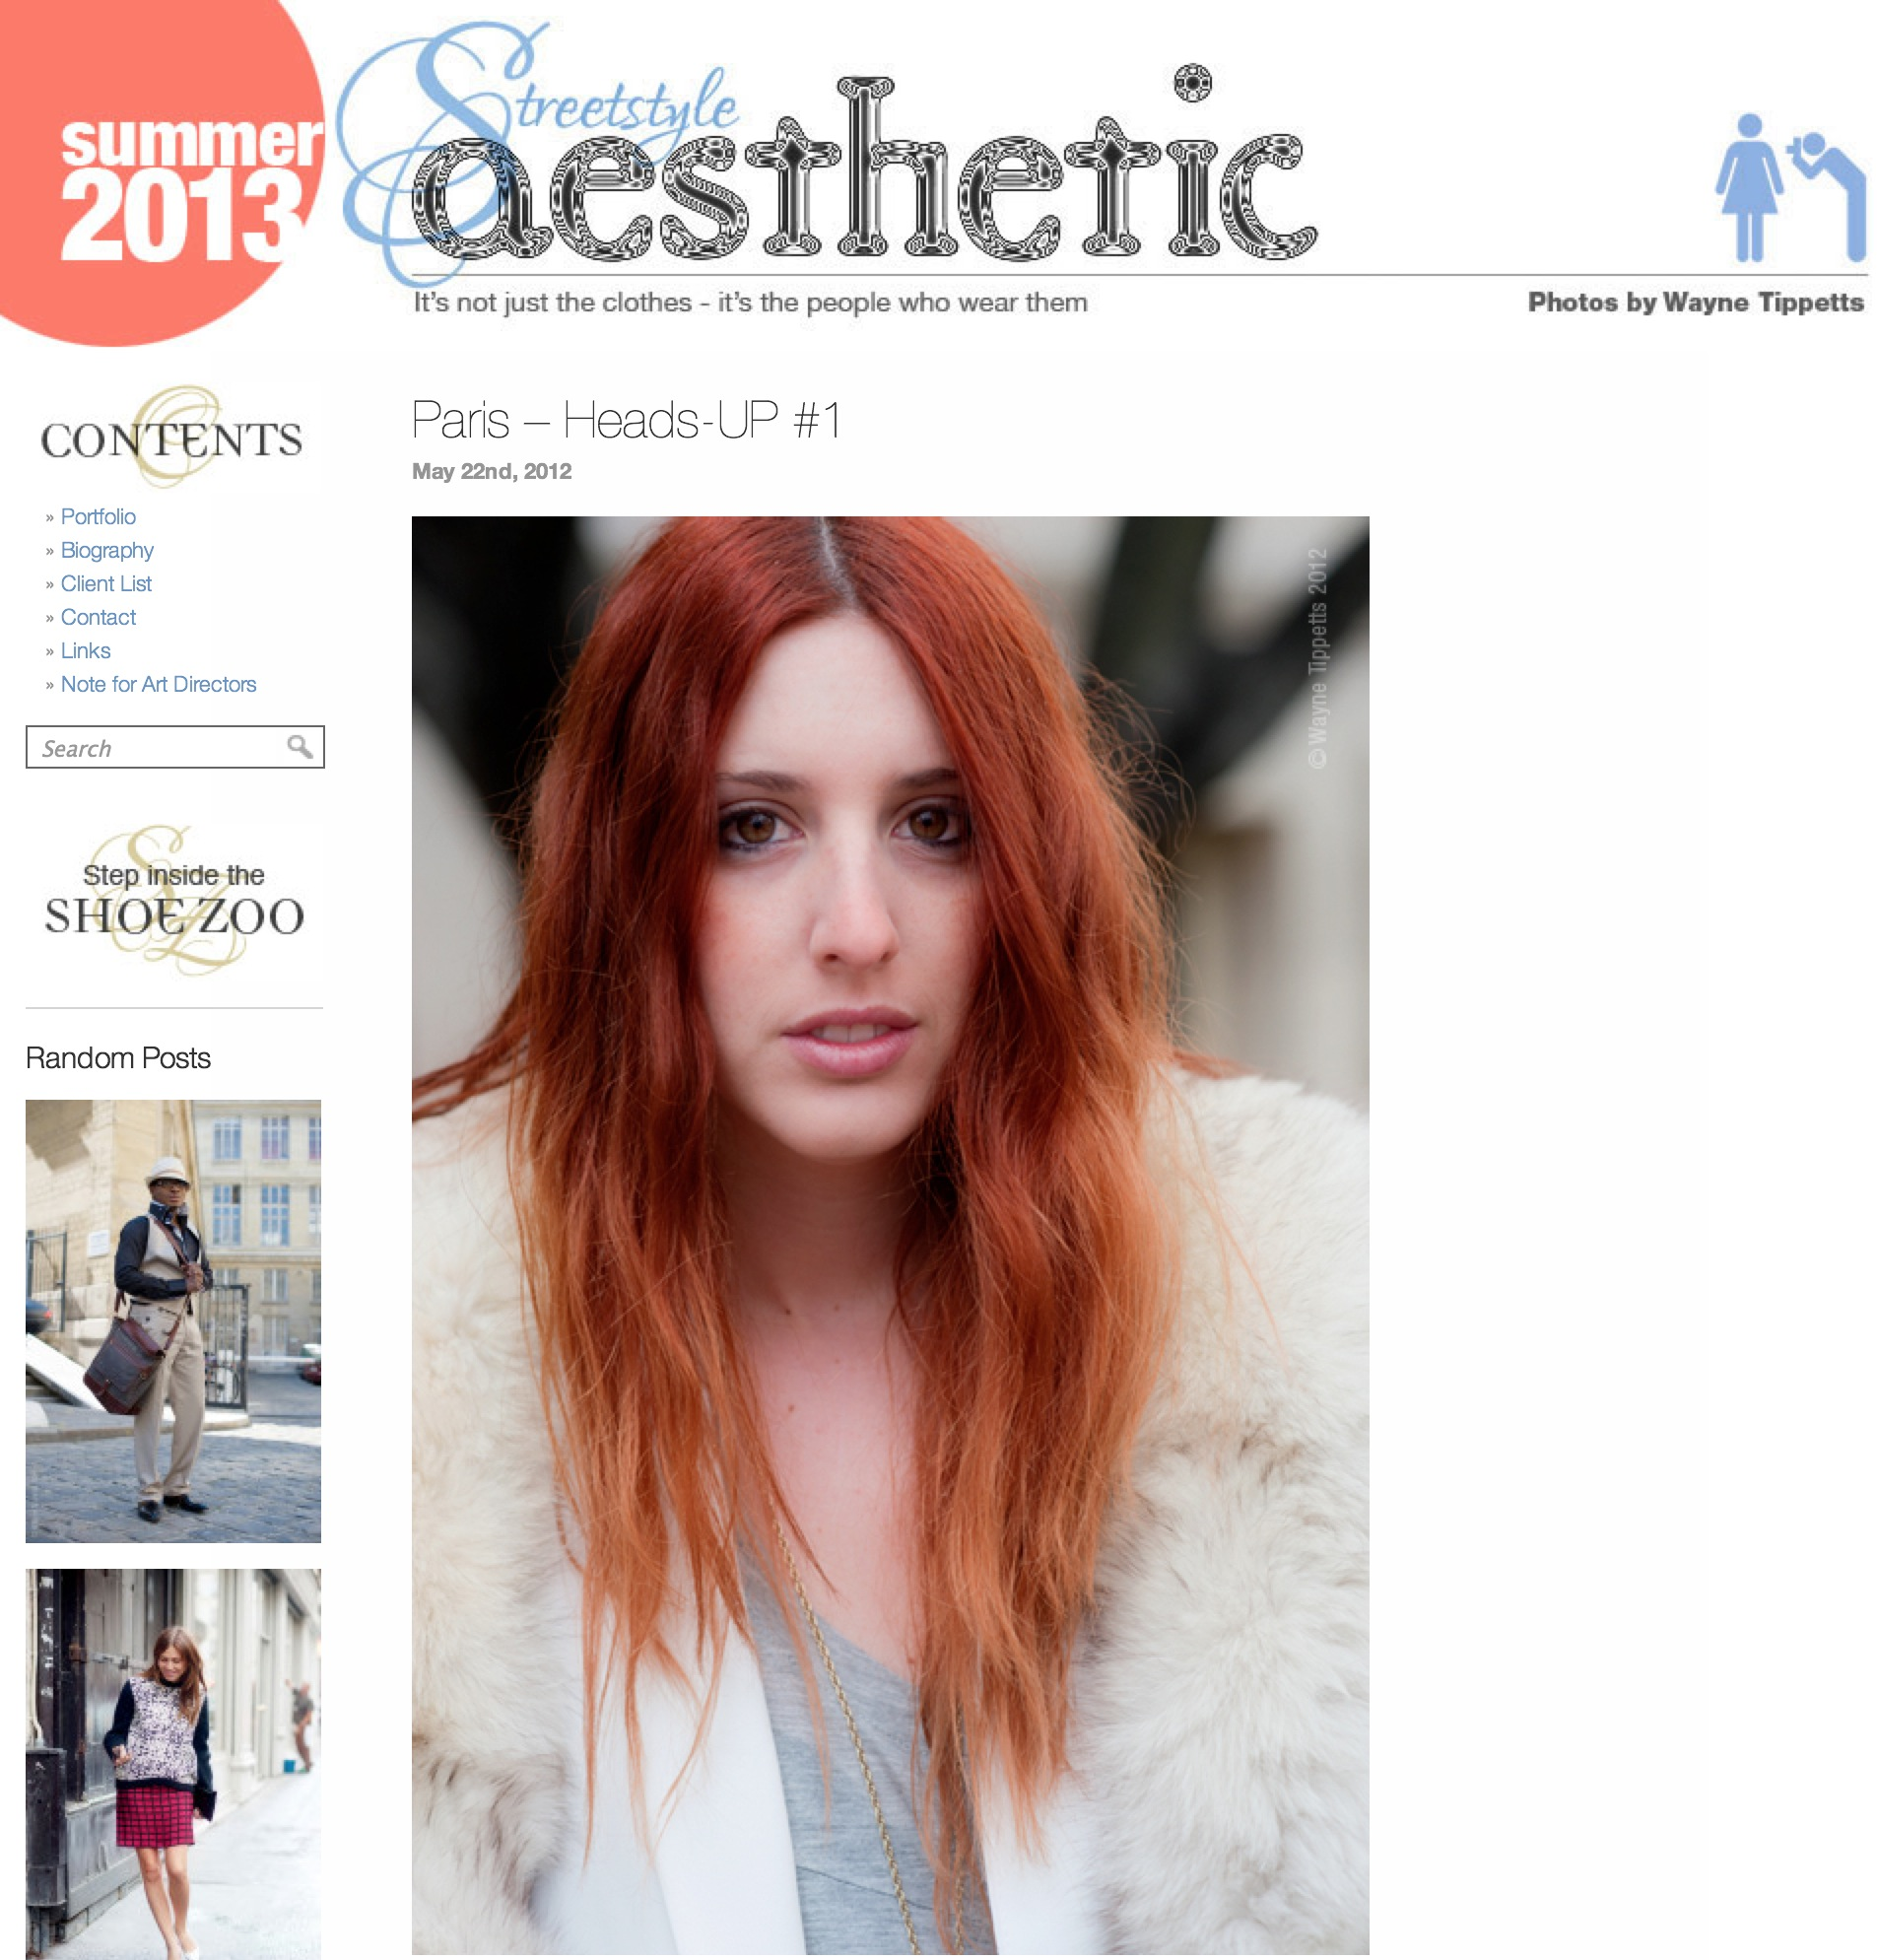 street style aesthetic- march 2012